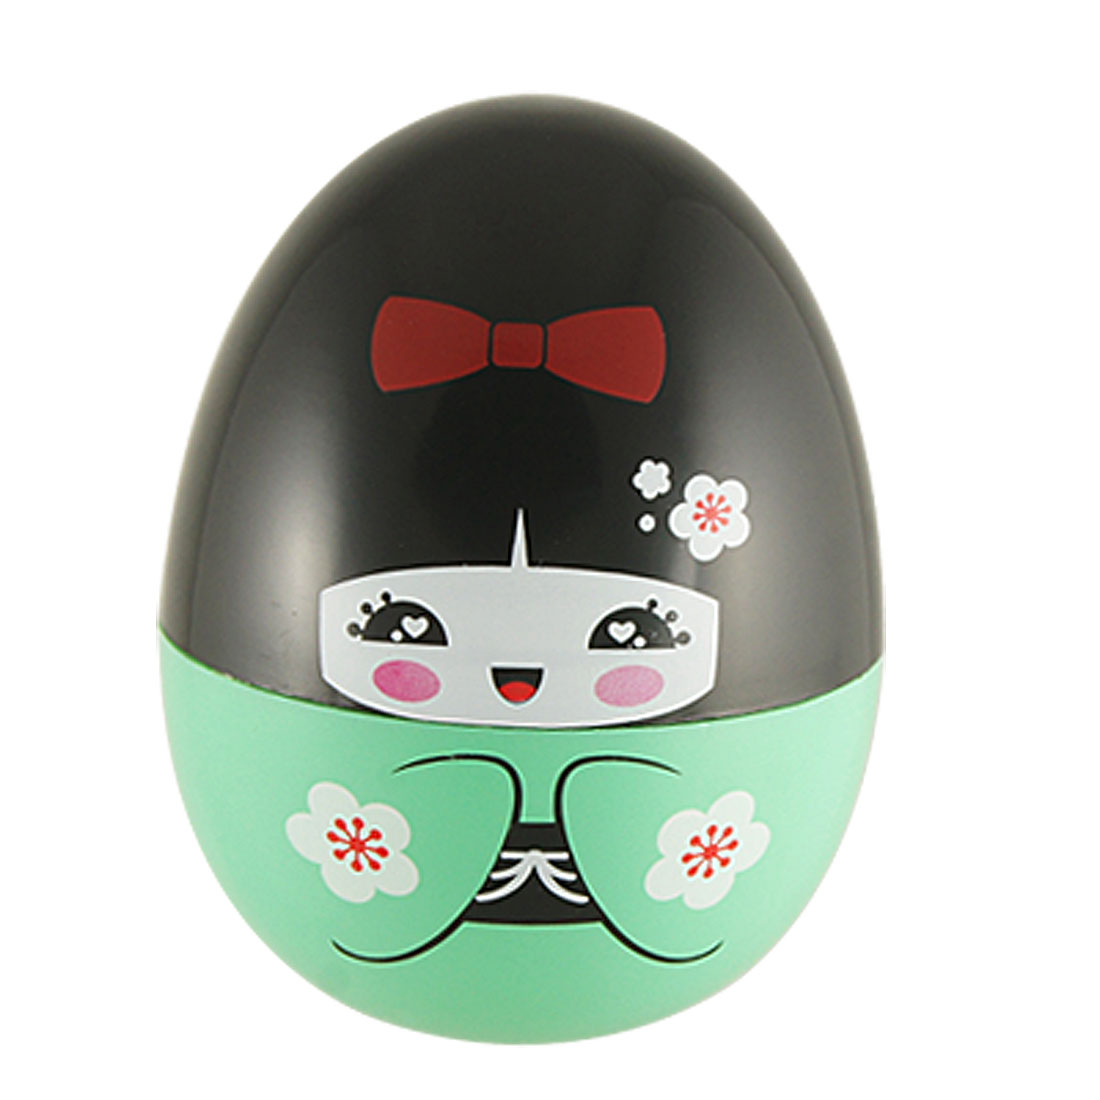 Egg Shape Desk Decor Cartoon Girl Tumbler Design Toothpick Holder